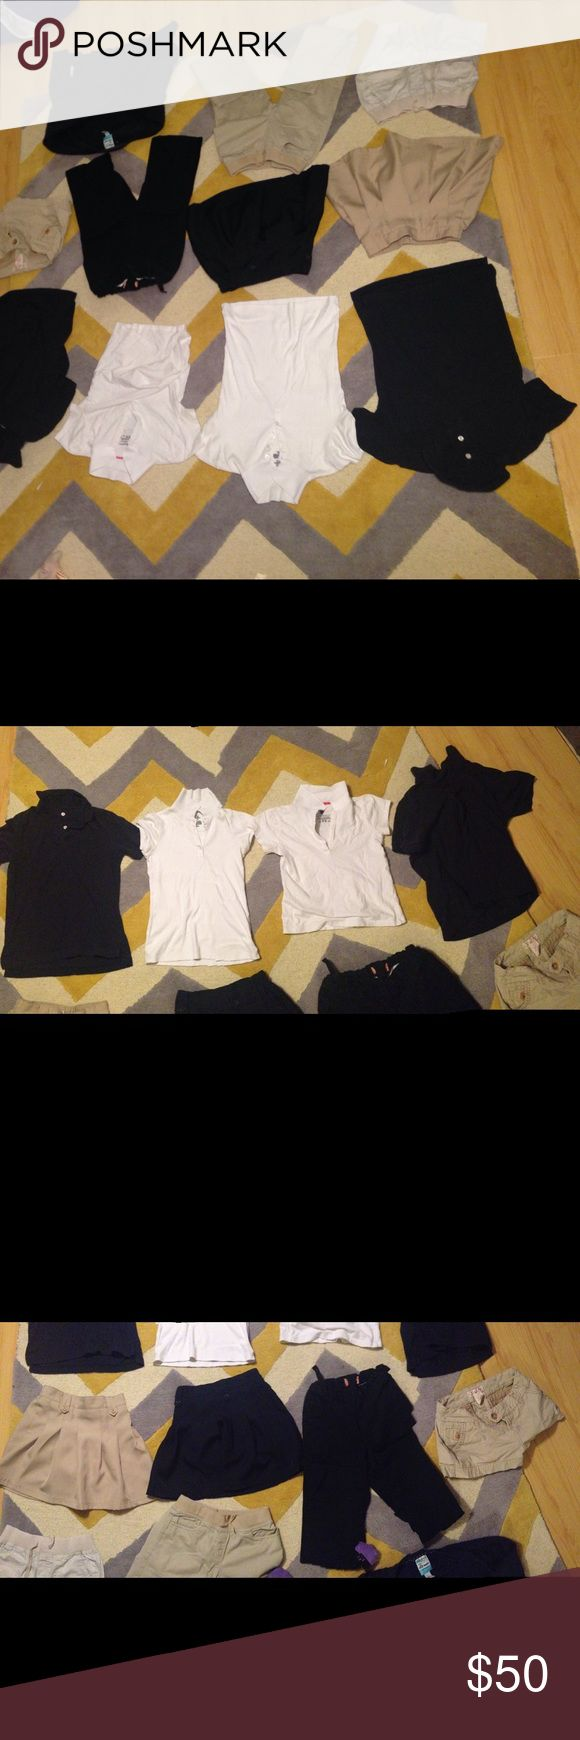 School uniform lot All pre-loved. Second picture ALL SHIRTS SIZE KIDS LARGE. Third picture: SKIRTS SIZE 7, PANTS SIZE 10, SHORTS SIZE 3(woman's). Fourth picture: SHORTS SIZE 8, PANTS SIZE 10, JACKET LARGE.                                        All items are kids sizes except for beige shorts in photo number 3. Old Navy Other